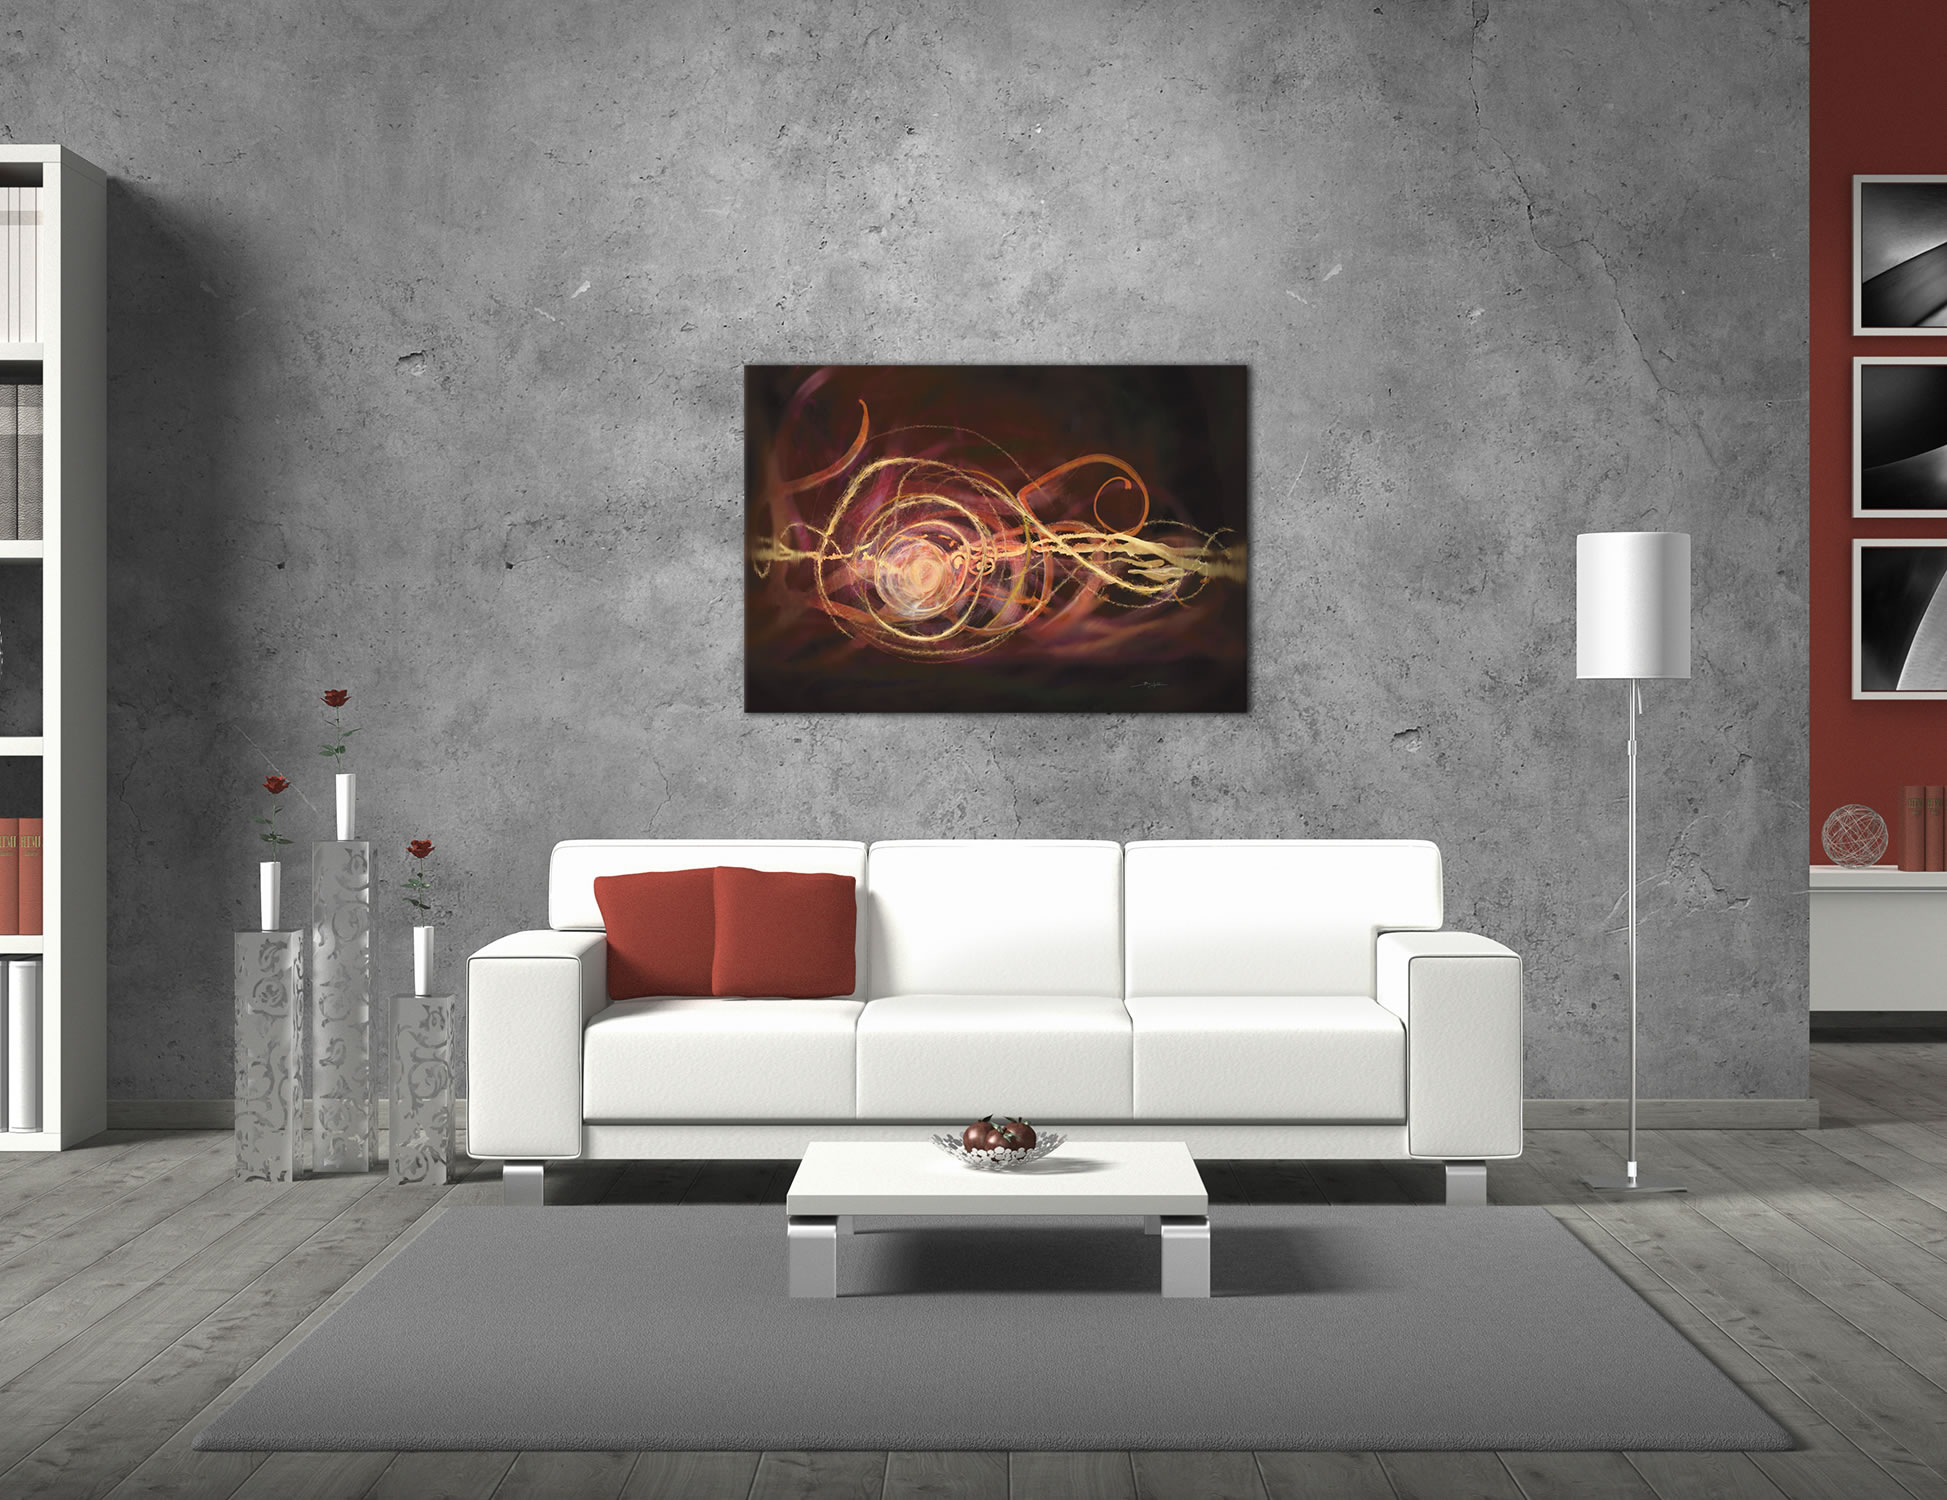 Warm Blend - Urban Abstract Art on Metal - Lifestyle Image